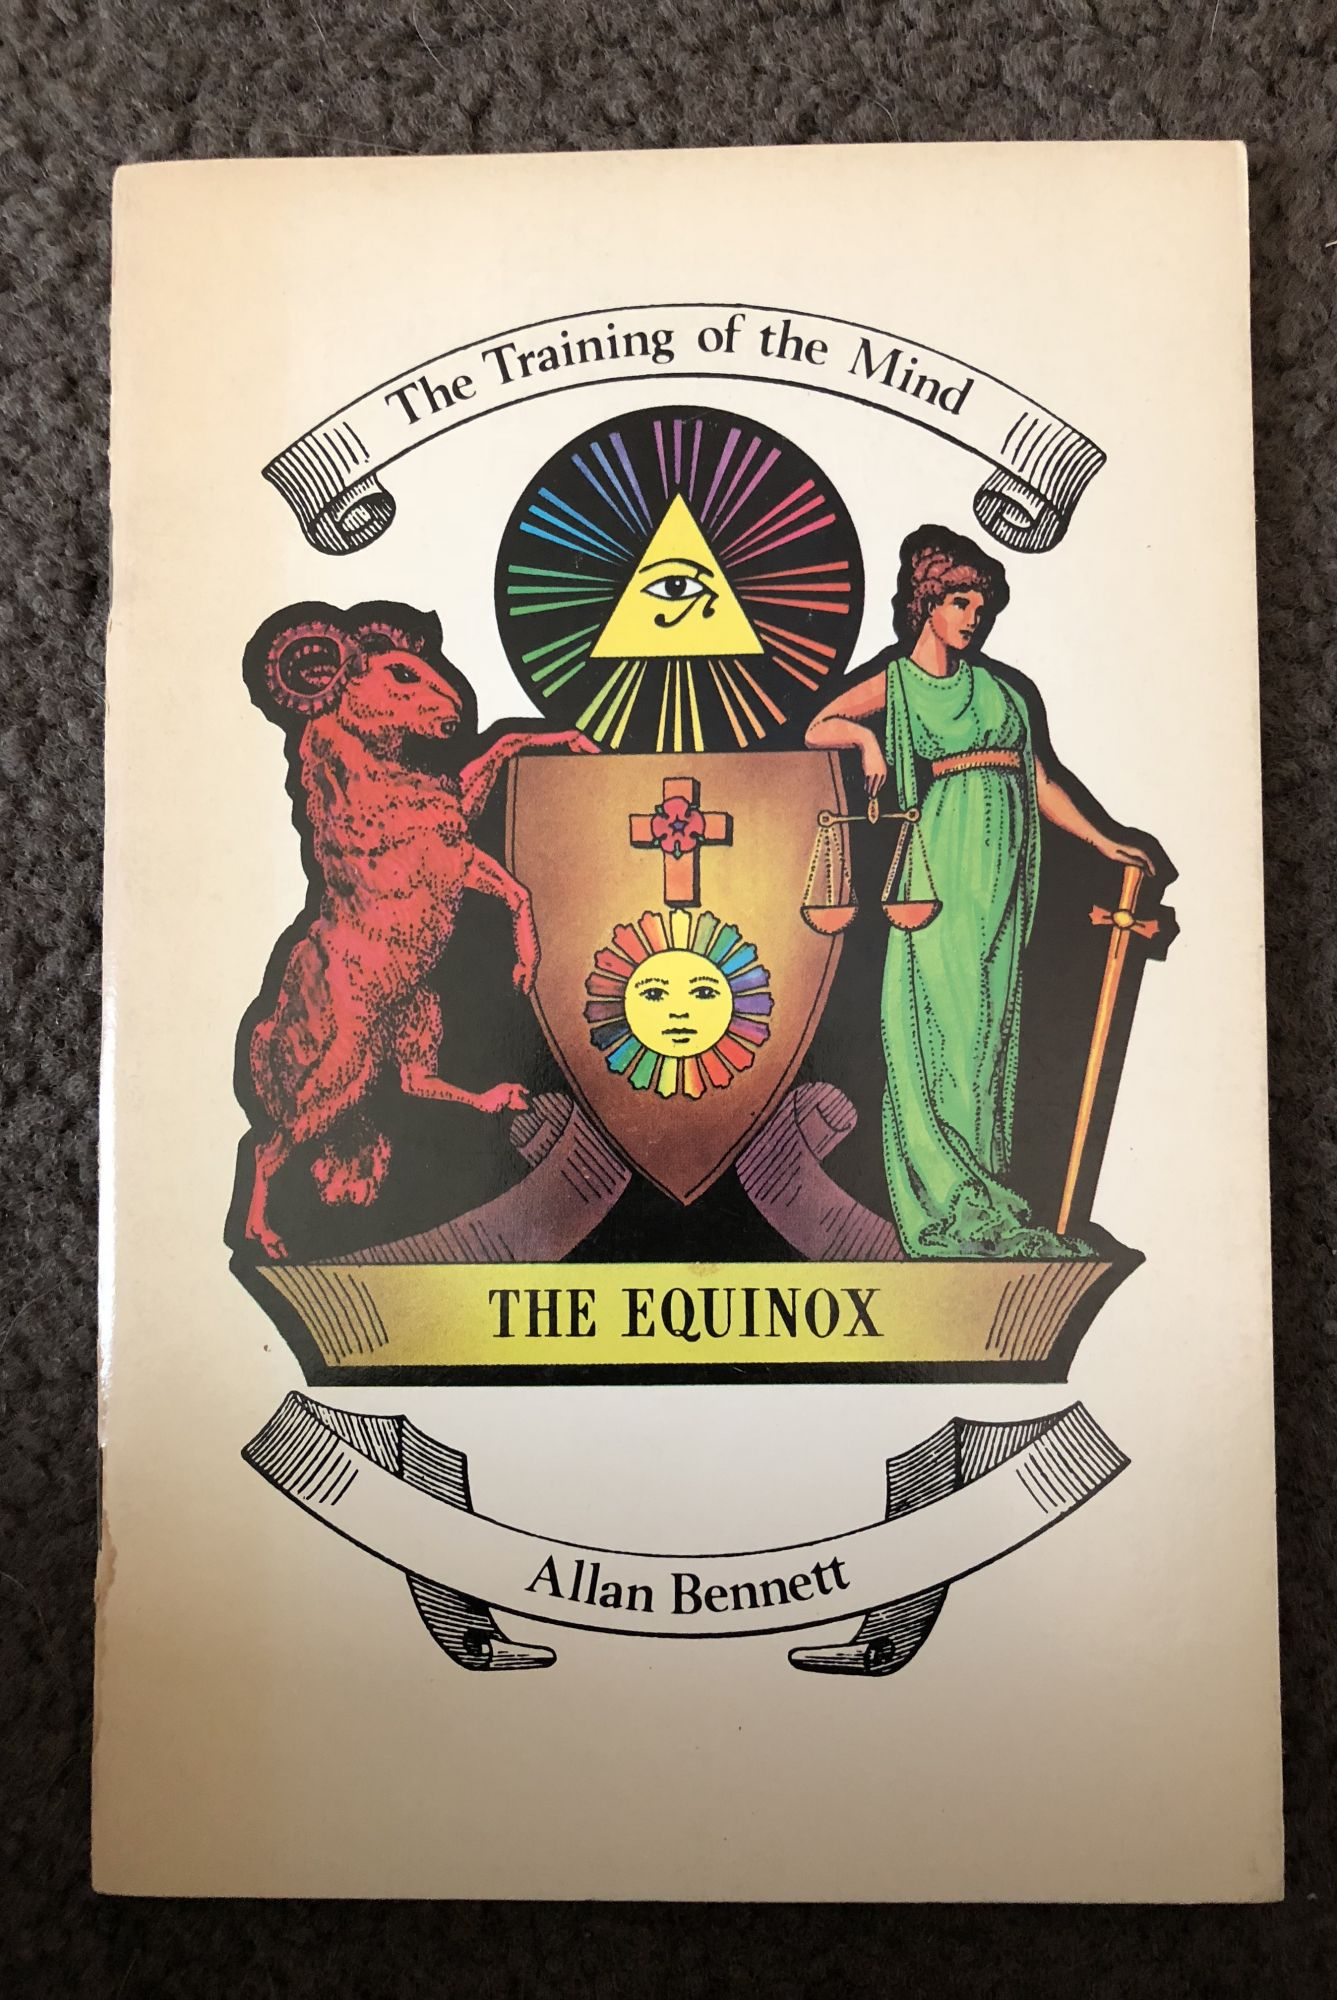 The Equinox, The Training of the Mind